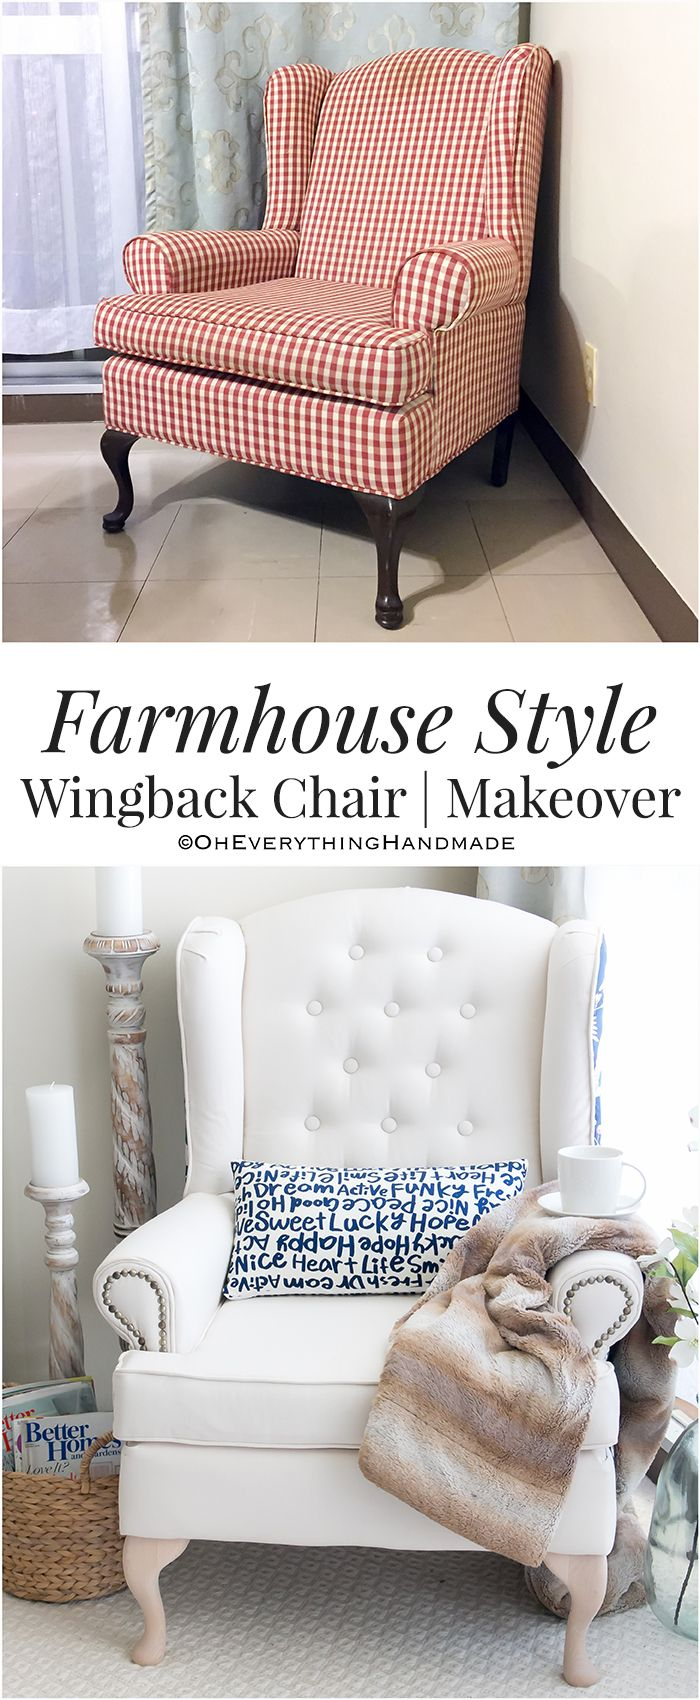 Farmhouse Style Wingback Chair Makeover Diy Furniture Ideas Plans Reupholster Furniture Chair Makeover Diy Furniture